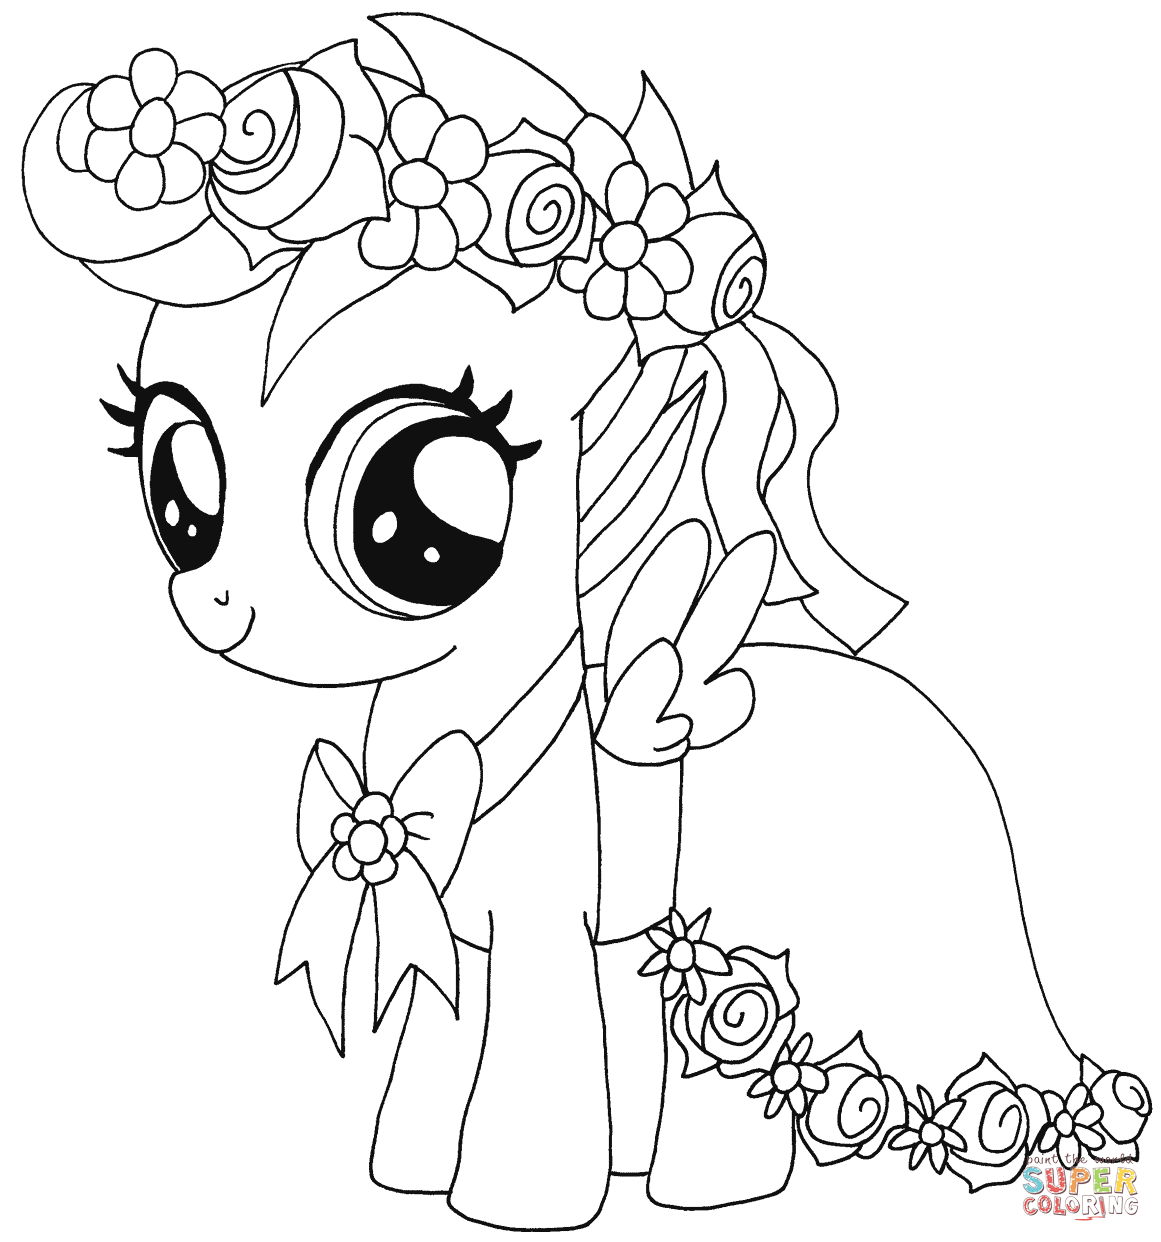 coloring pages for my little pony free printable my little pony coloring pages for kids pages for little my pony coloring